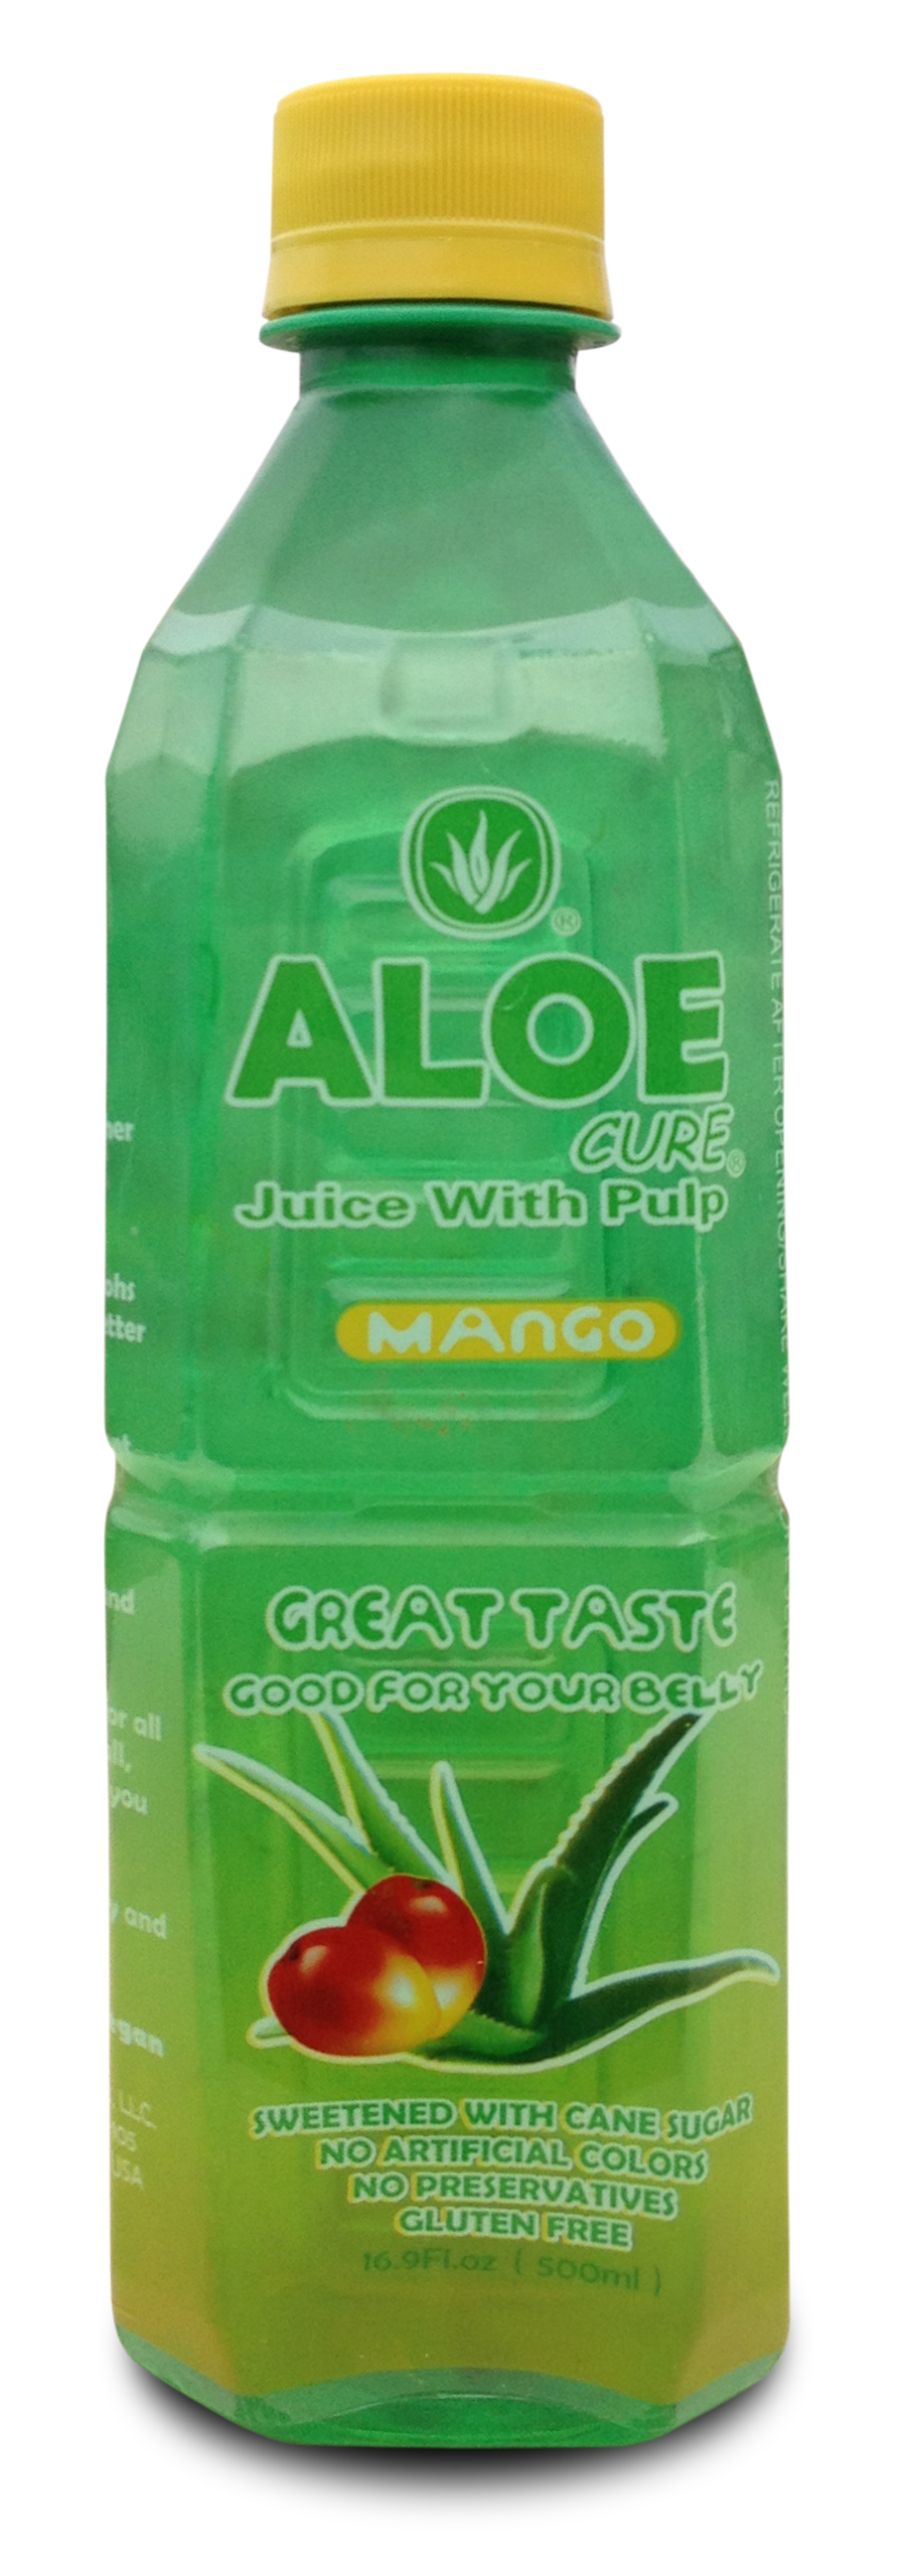 aloe vera feuilles boisson 500 ml frais aloe vera jus boissons base de plantes autres. Black Bedroom Furniture Sets. Home Design Ideas